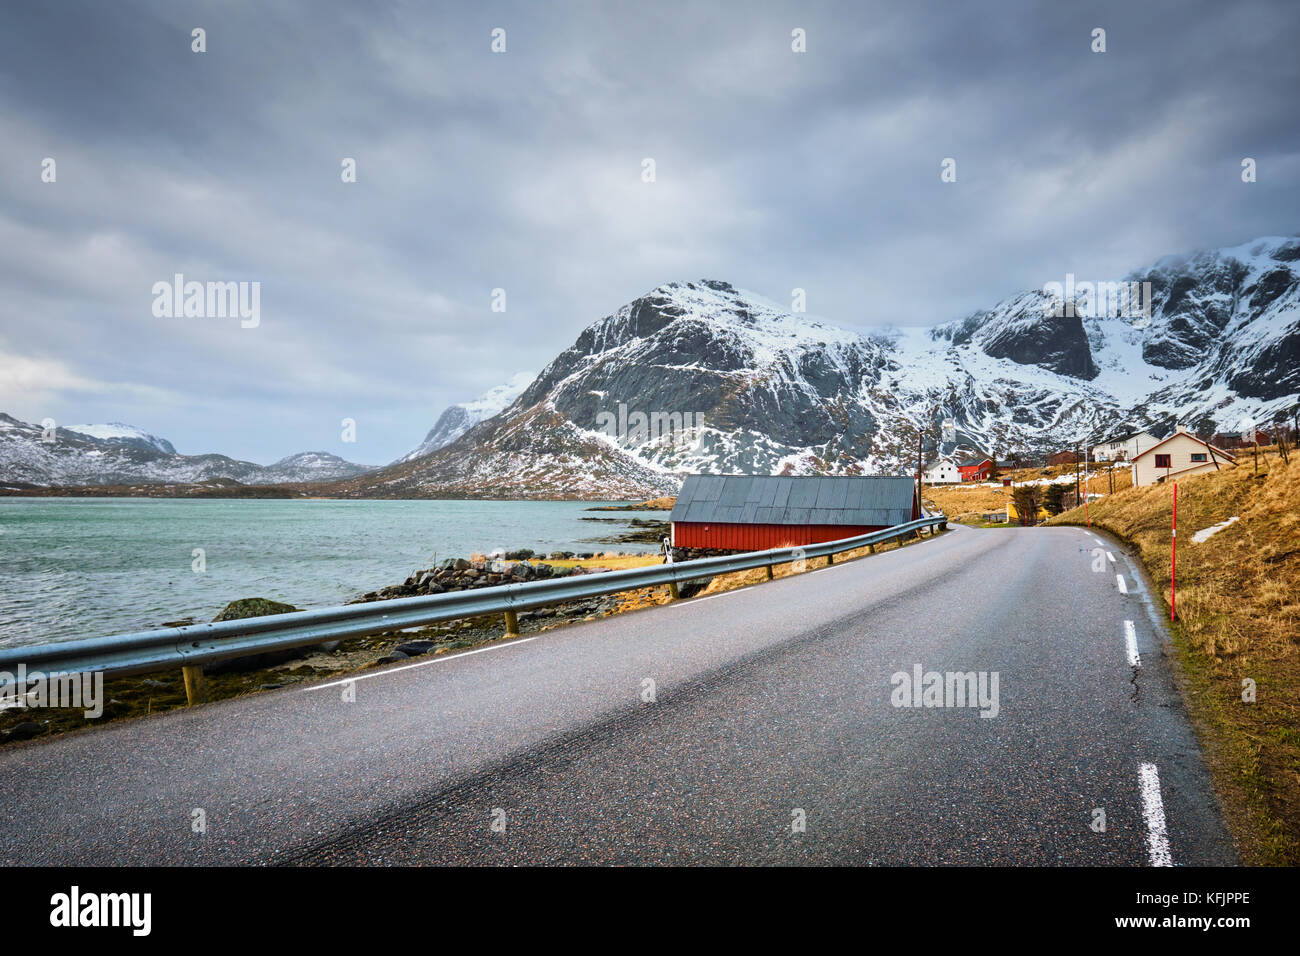 Road in fjord in Norway - Stock Image